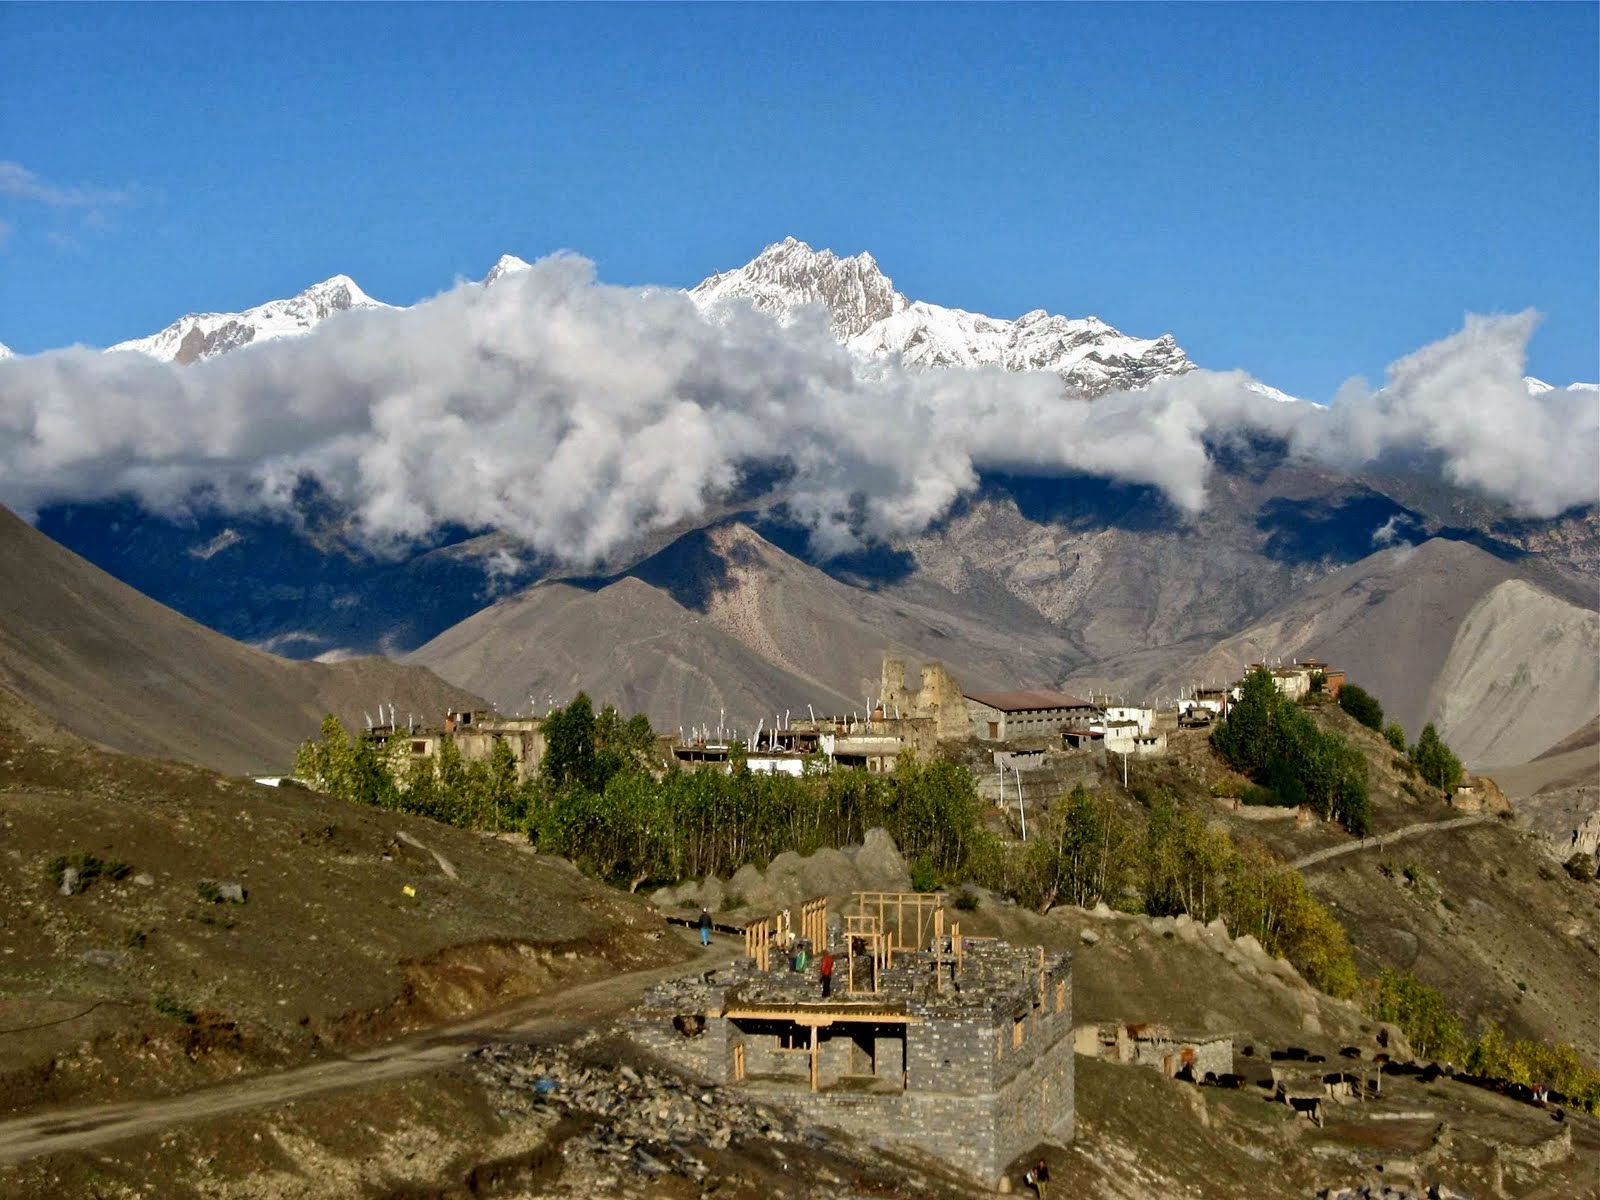 World Beautifull Places Nepal Annapurna Travel Guide Information And Images 2013